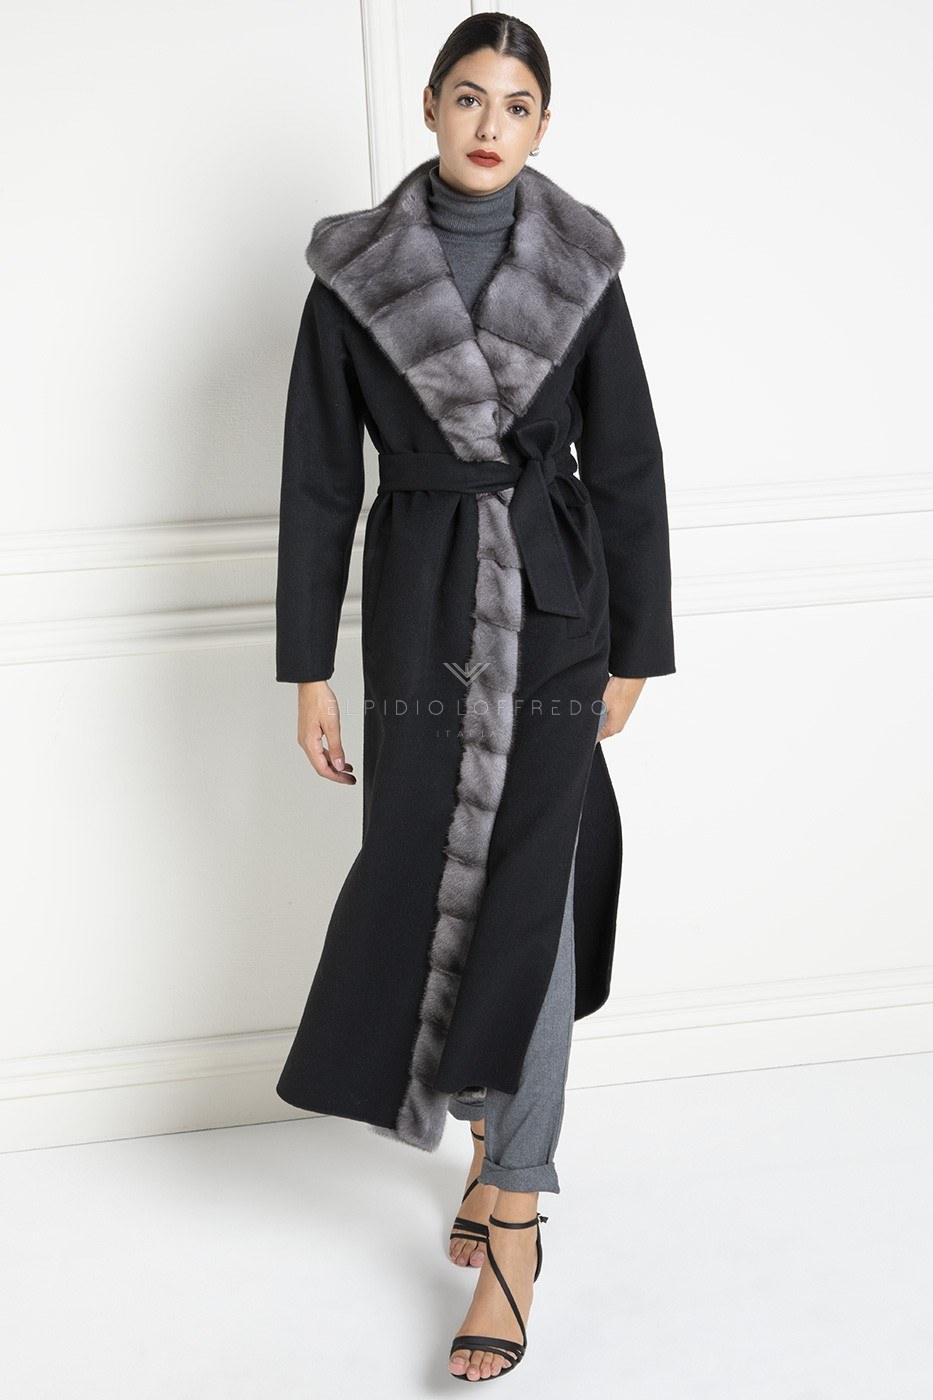 Cashmere Loro Piana Coat with Blue Iris Mink Fur and Hood